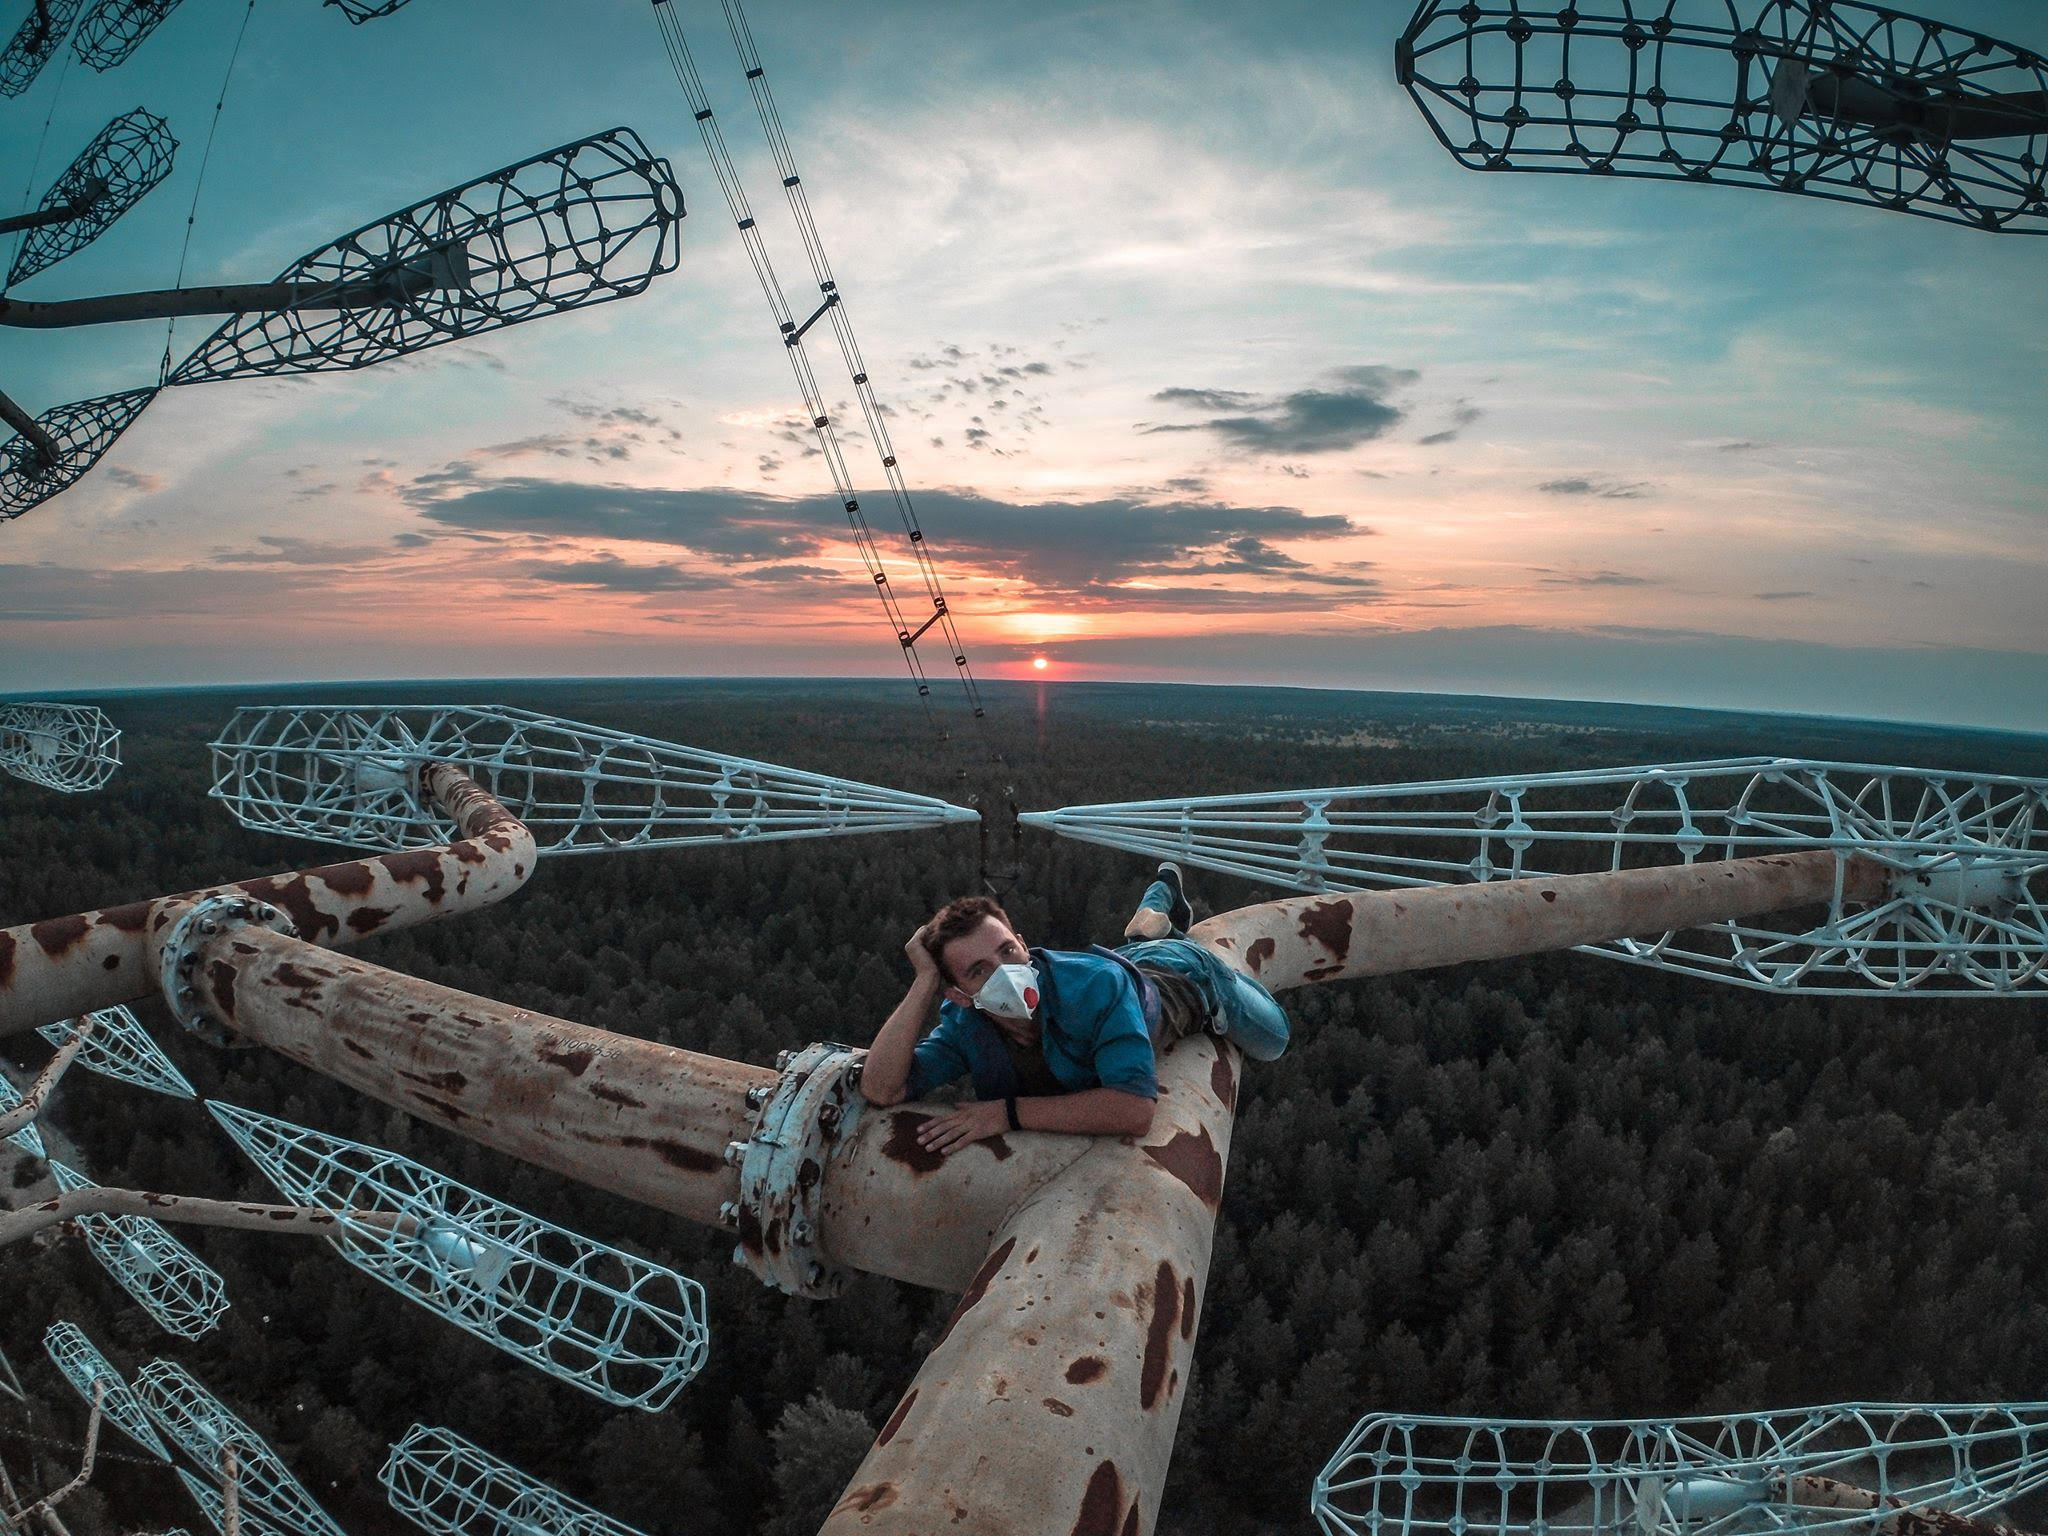 """Documentary Release: """"Stalking Chernobyl: Exploration After Apocalypse"""" — April 26 Online Q&A With Director, Editor, and Cast"""